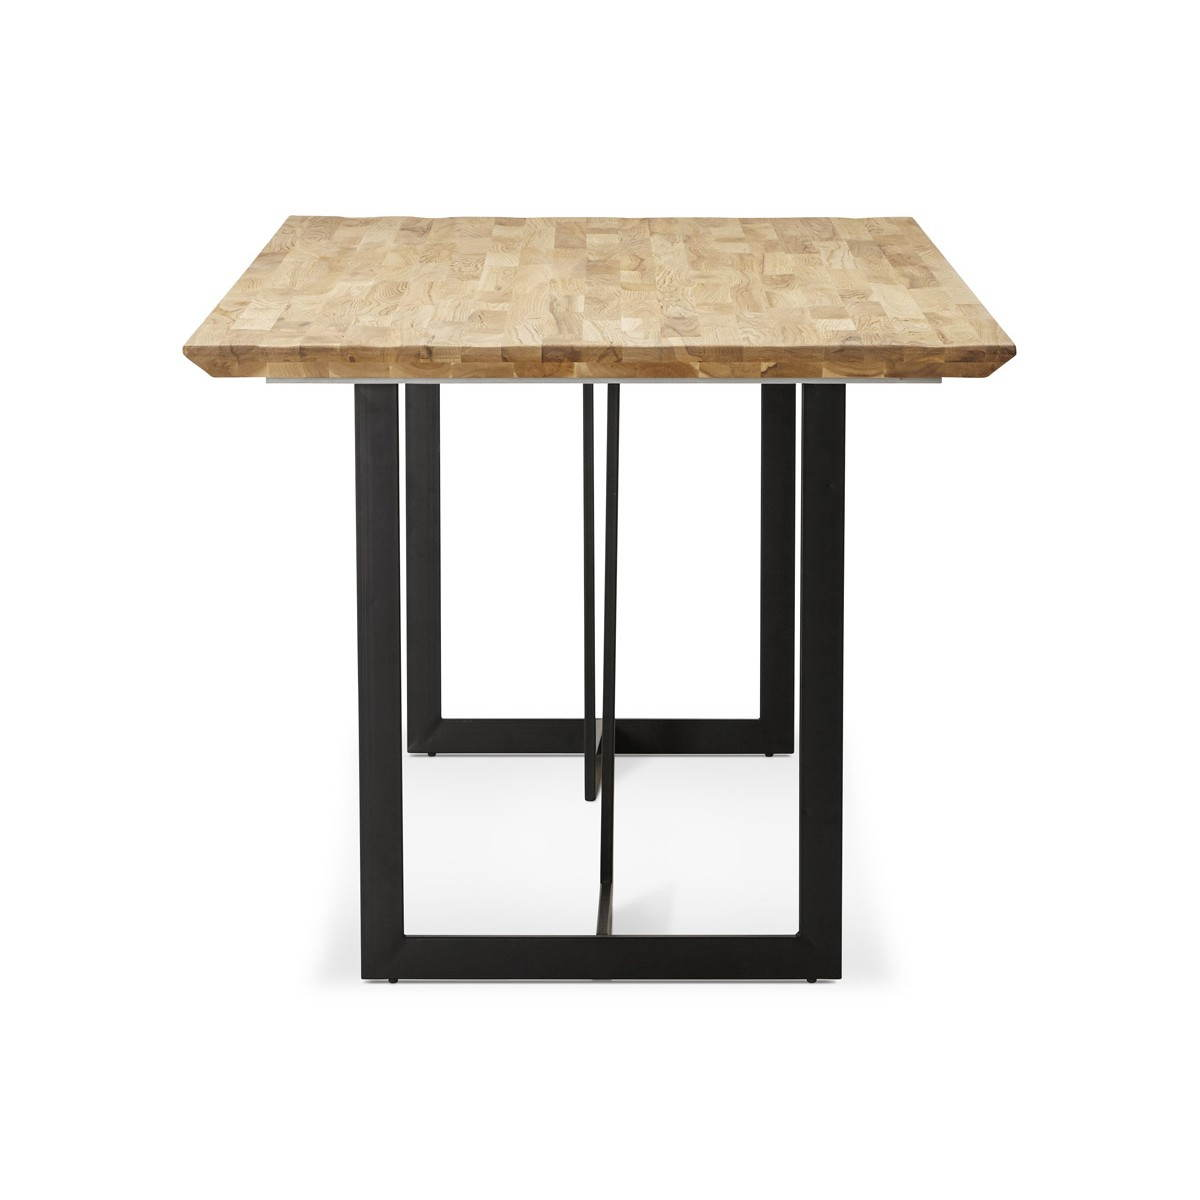 Table moderne bois massif stunning salon en bois moderne for Table salle a manger 12 couverts